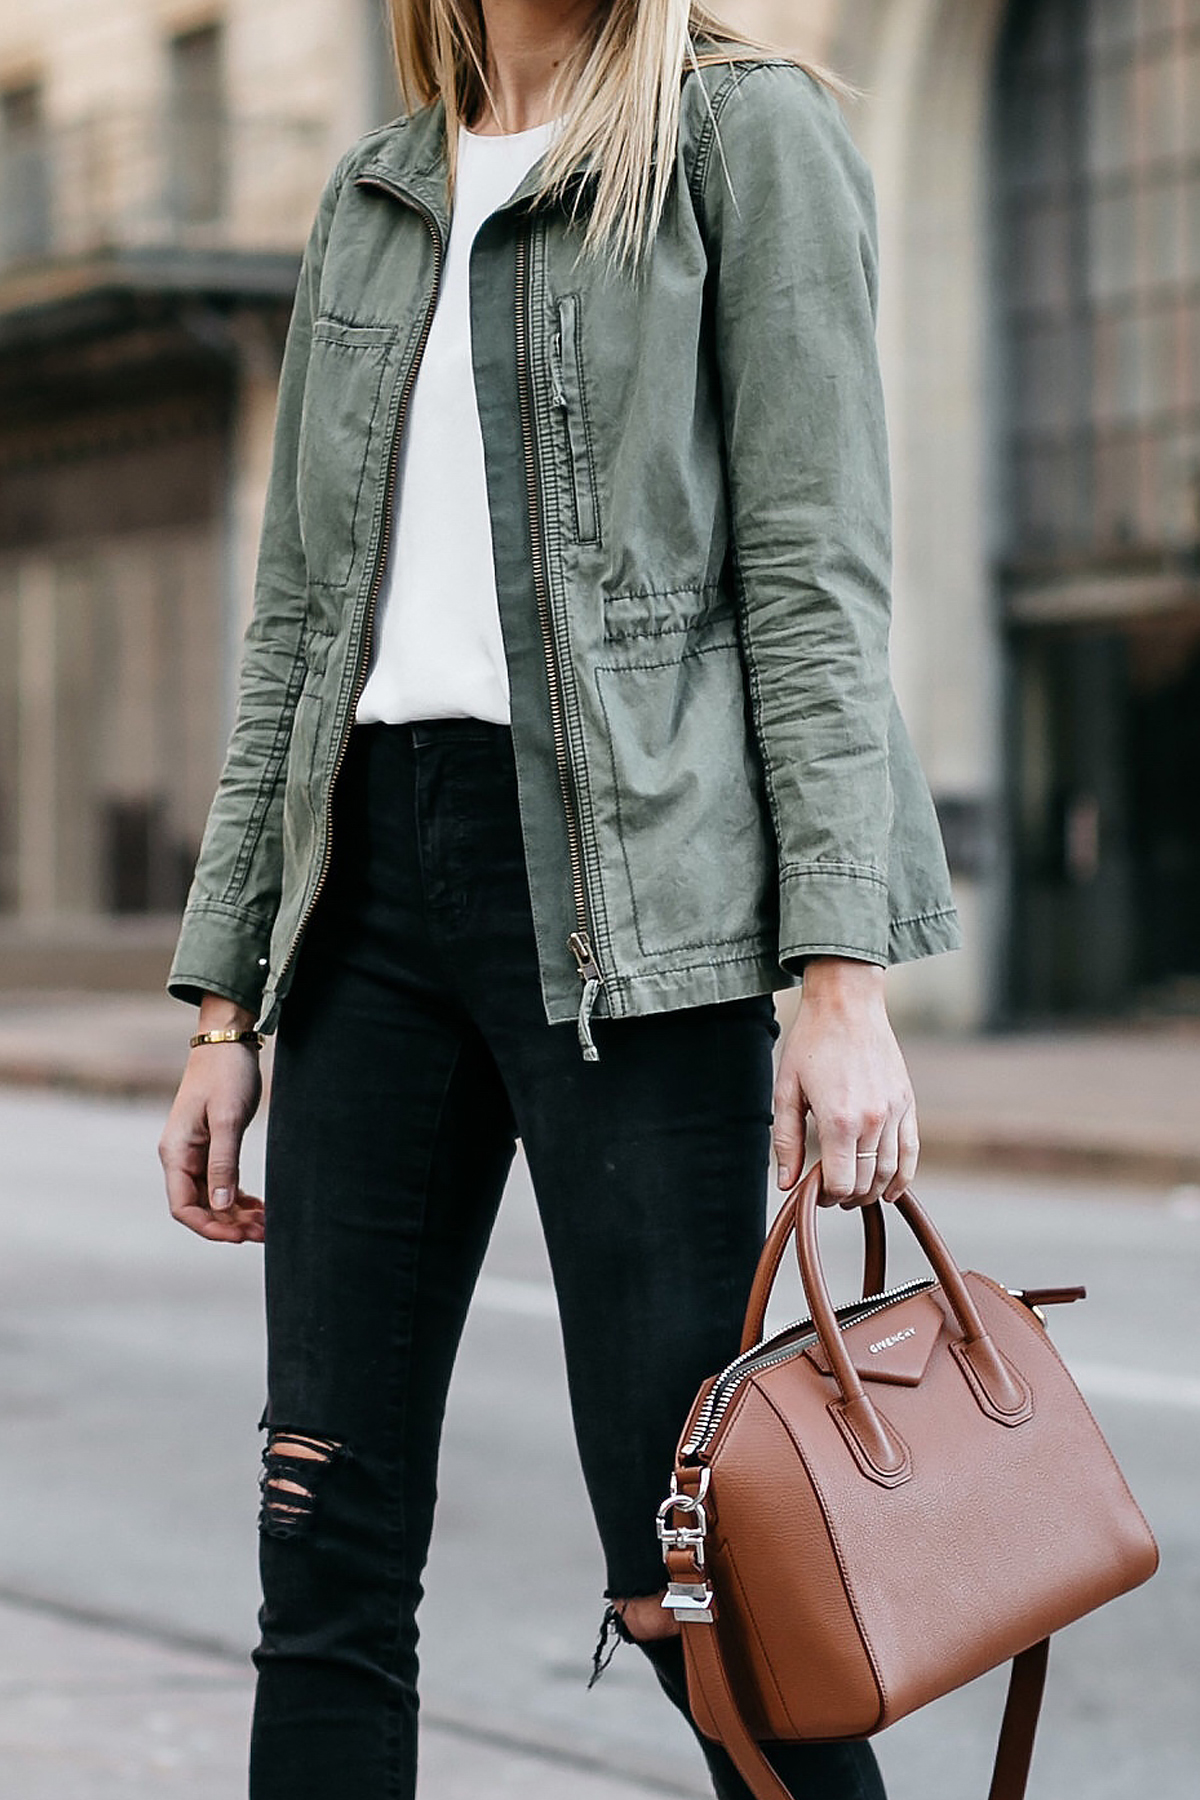 Woman Wearing Madewell Fleet Jacket Green Jacket White Tank Madewell Black Ripped Skinny Jeans Givenchy Antigona Small Satchel Cognac Fashion Jackson Dallas Blogger Fashion Blogger Street Style